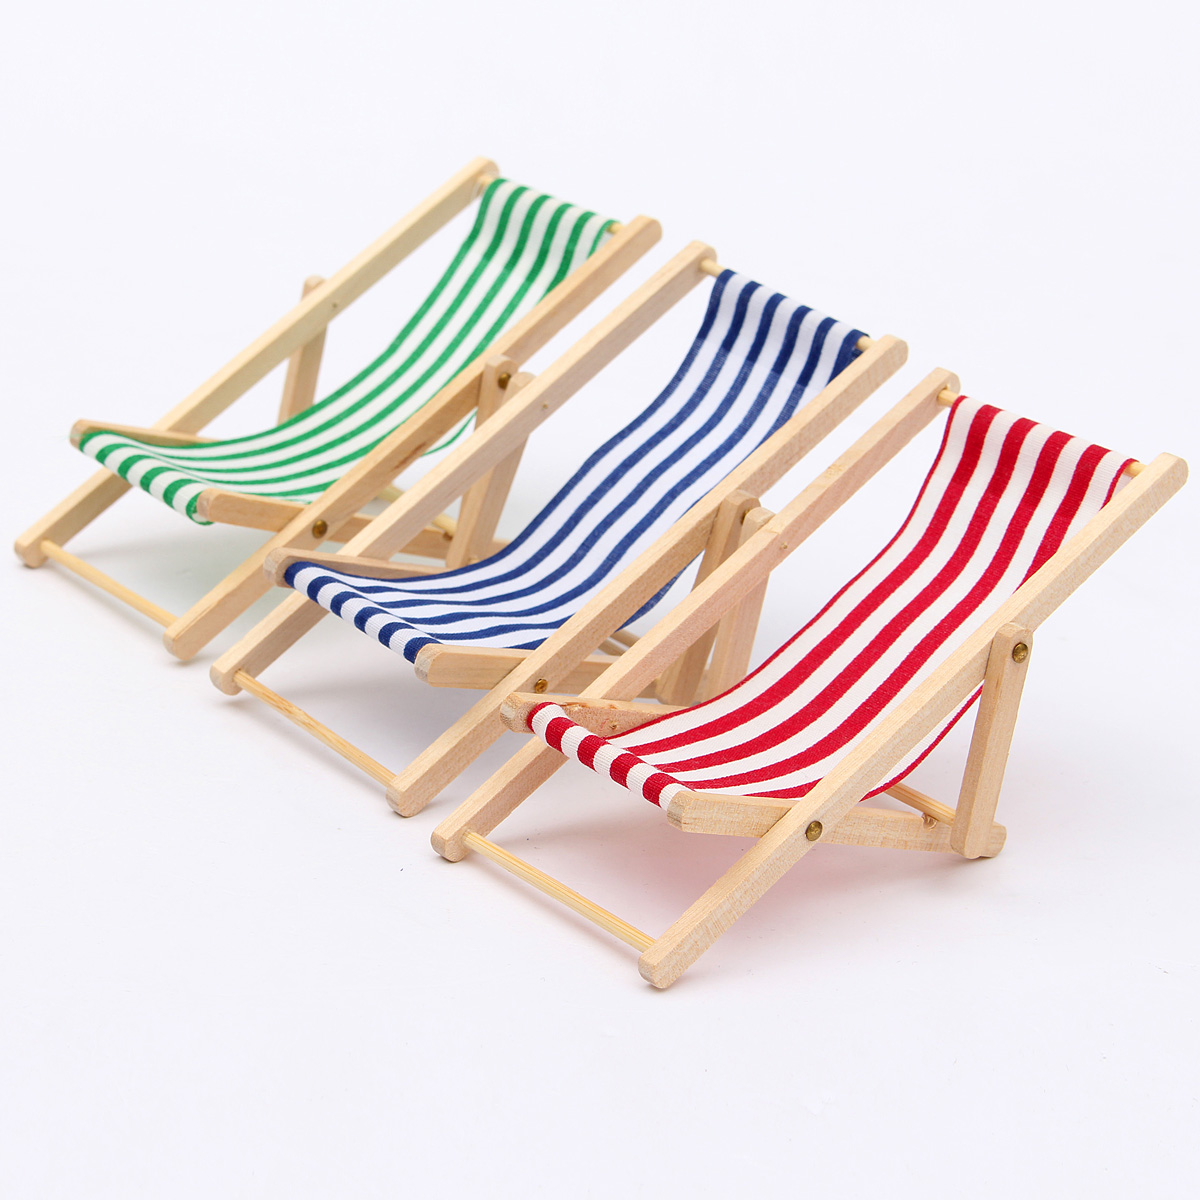 metal lounge chair with wheels folding reviews new dolls house 1:12 miniature foldable wooden deckchair beach toy | ebay